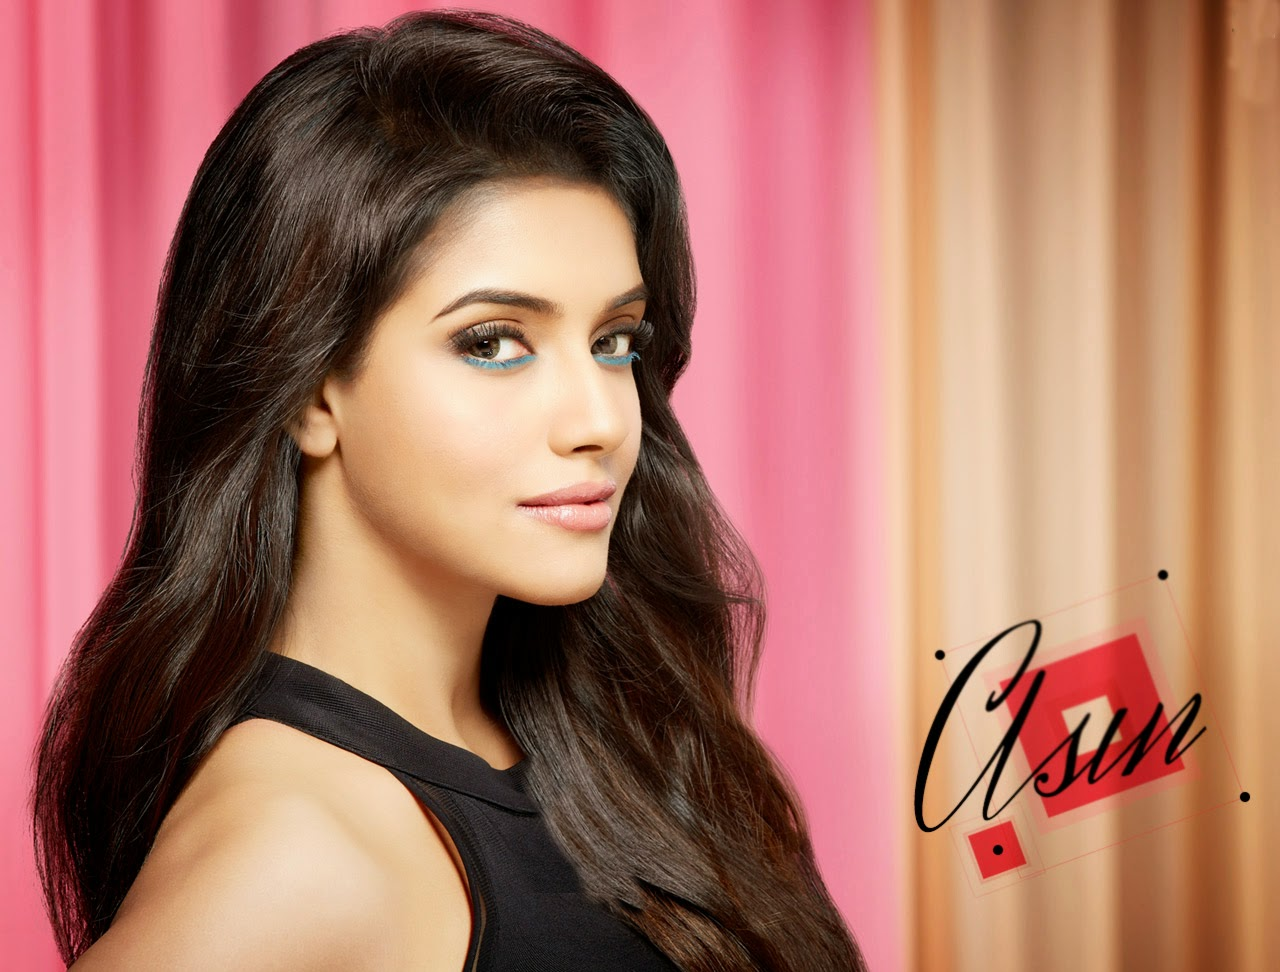 Full Hd Wallpapers Bollywood Actress: Wellcome To Bollywood HD Wallpapers: Asin Thottumkal